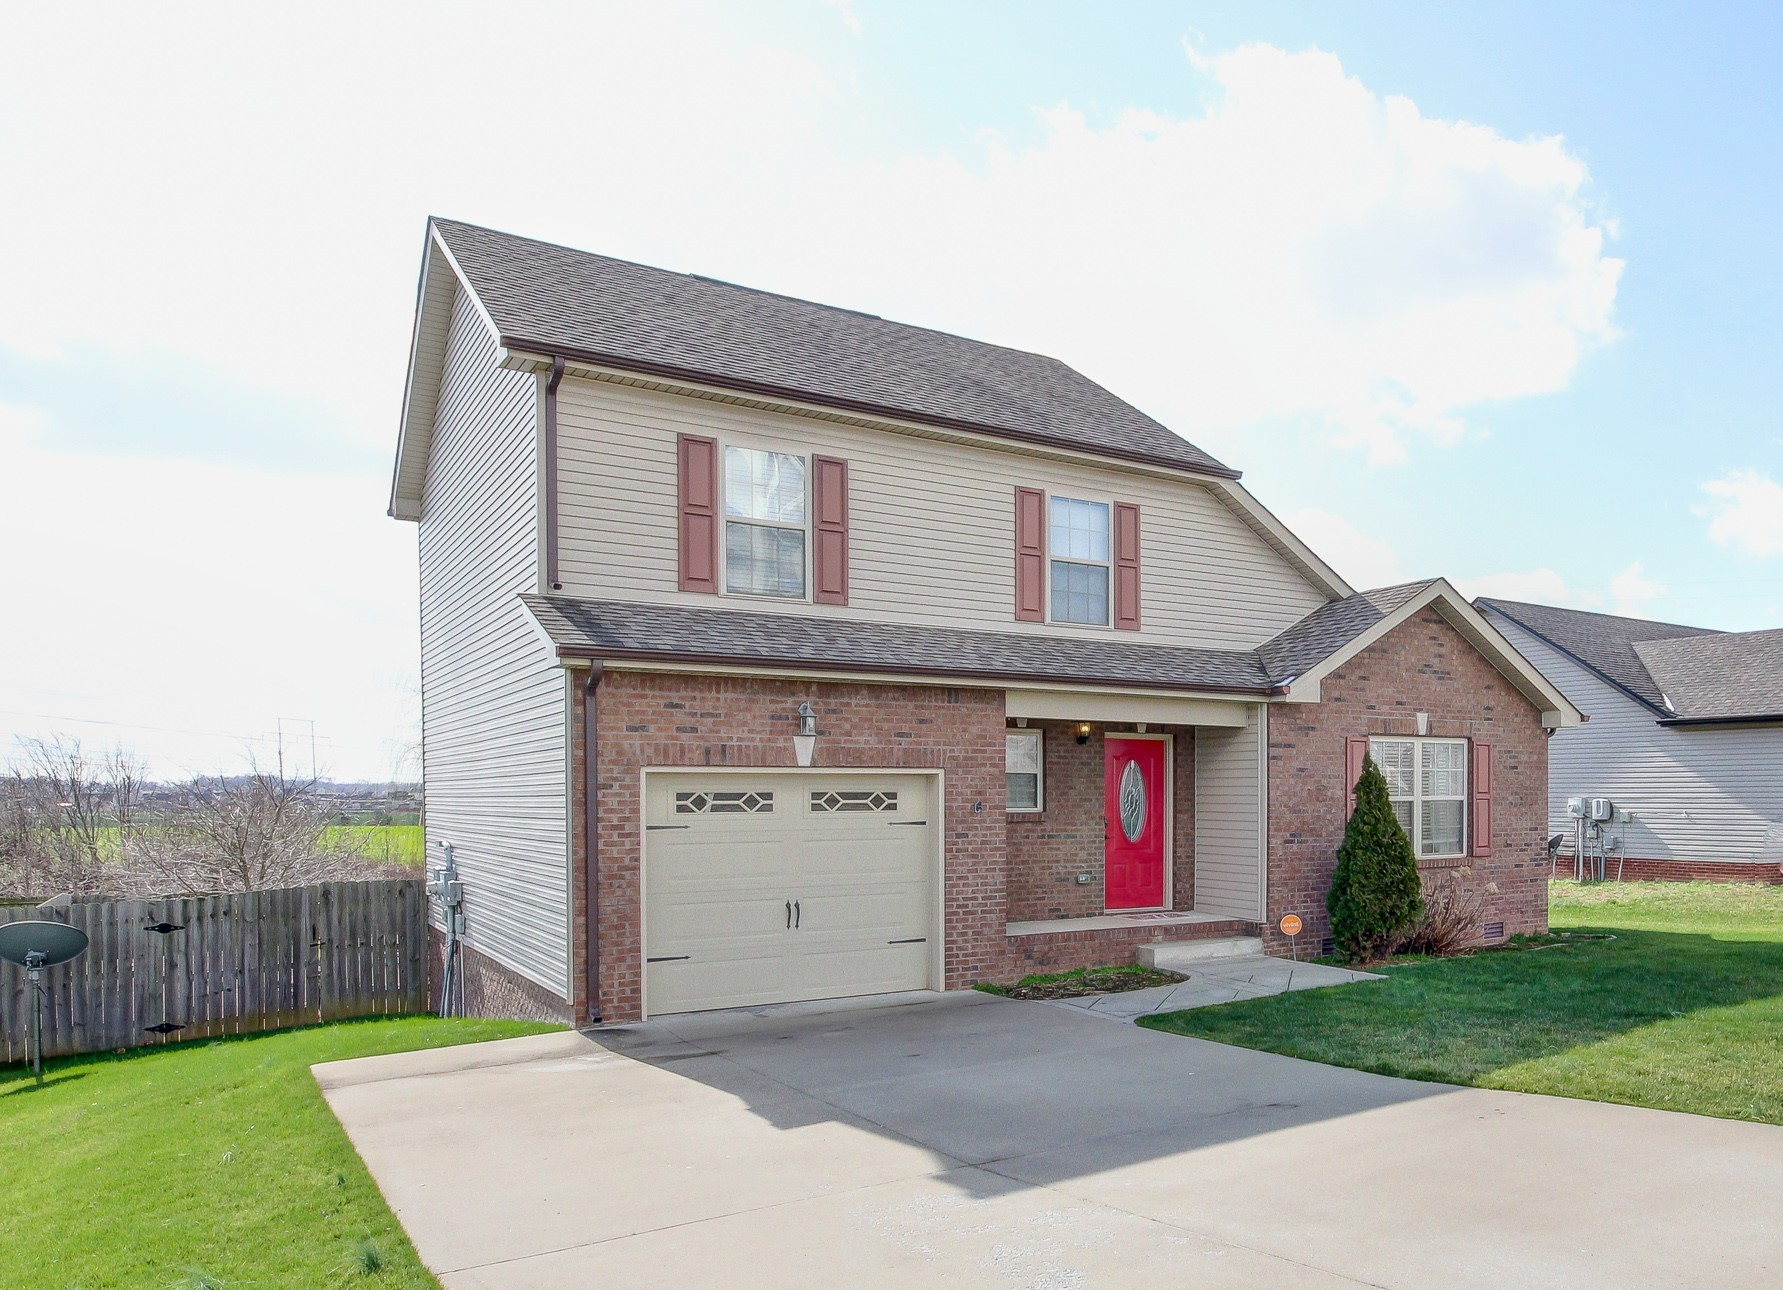 2484 Andersonville Dr, Clarksville, TN 37042 - Clarksville, TN real estate listing